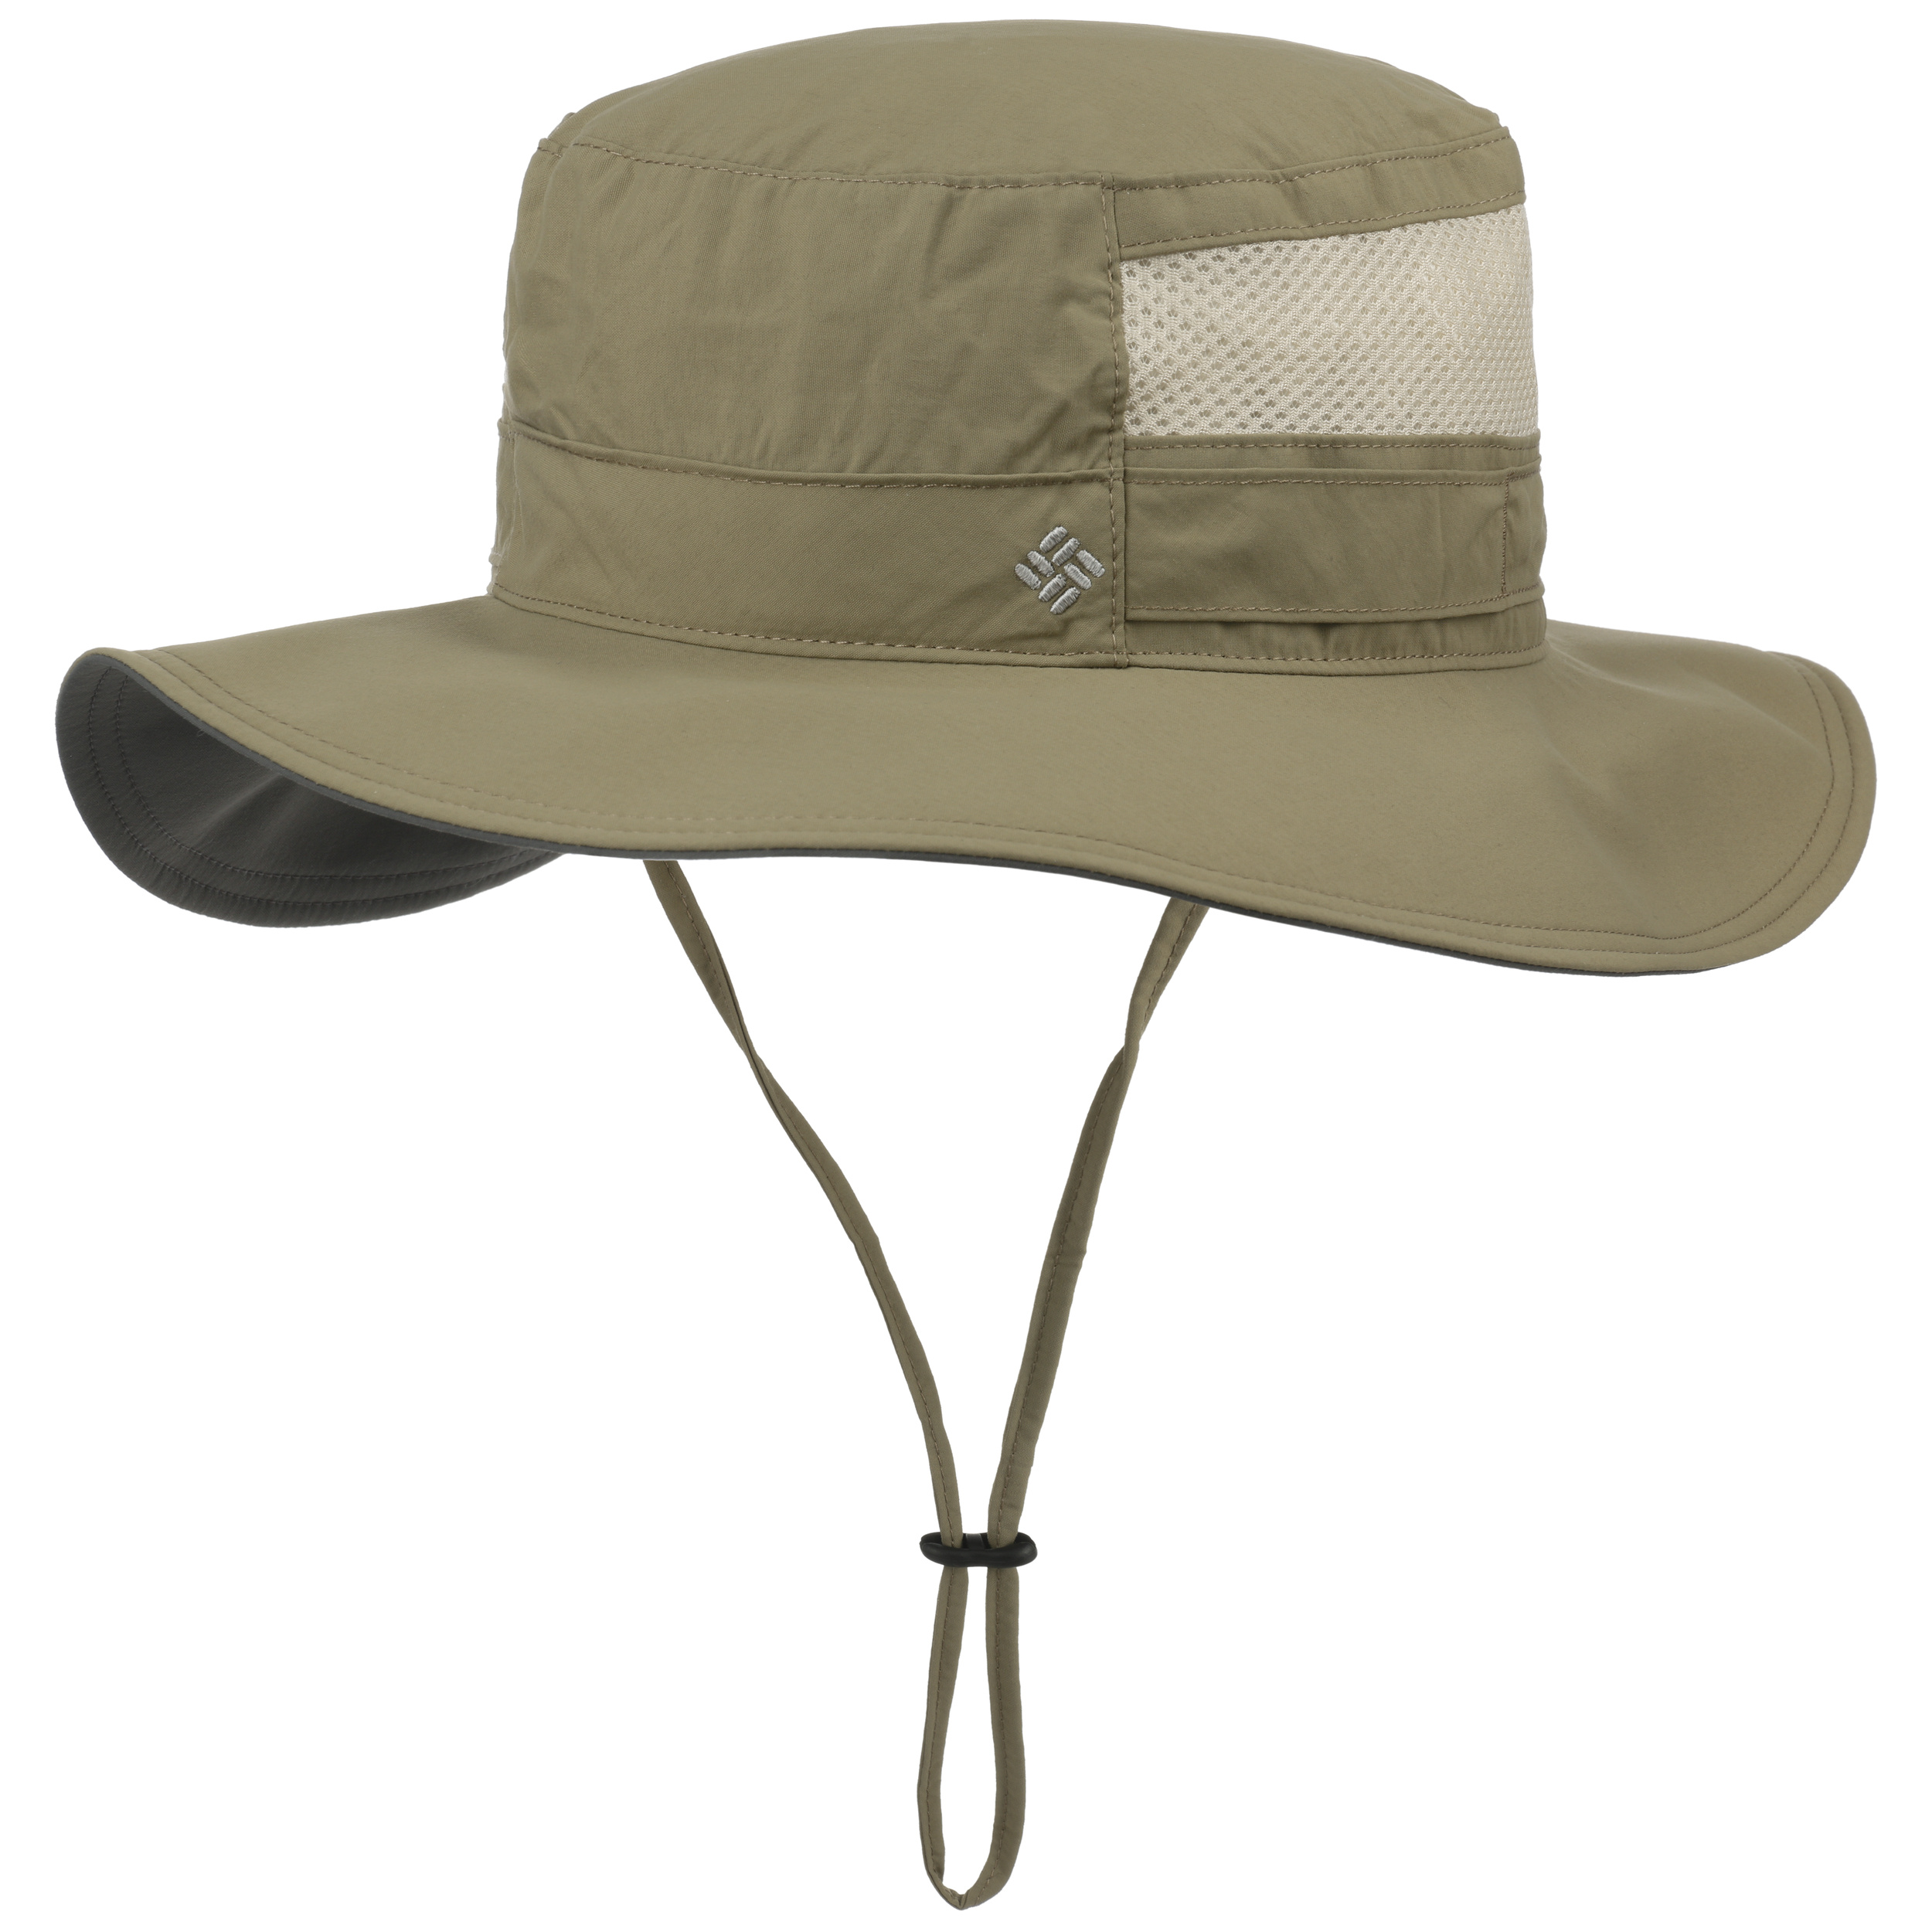 28a65abc3f9 ... Columbia 1 · Bora Sun Hat by Columbia - olive 6 ...